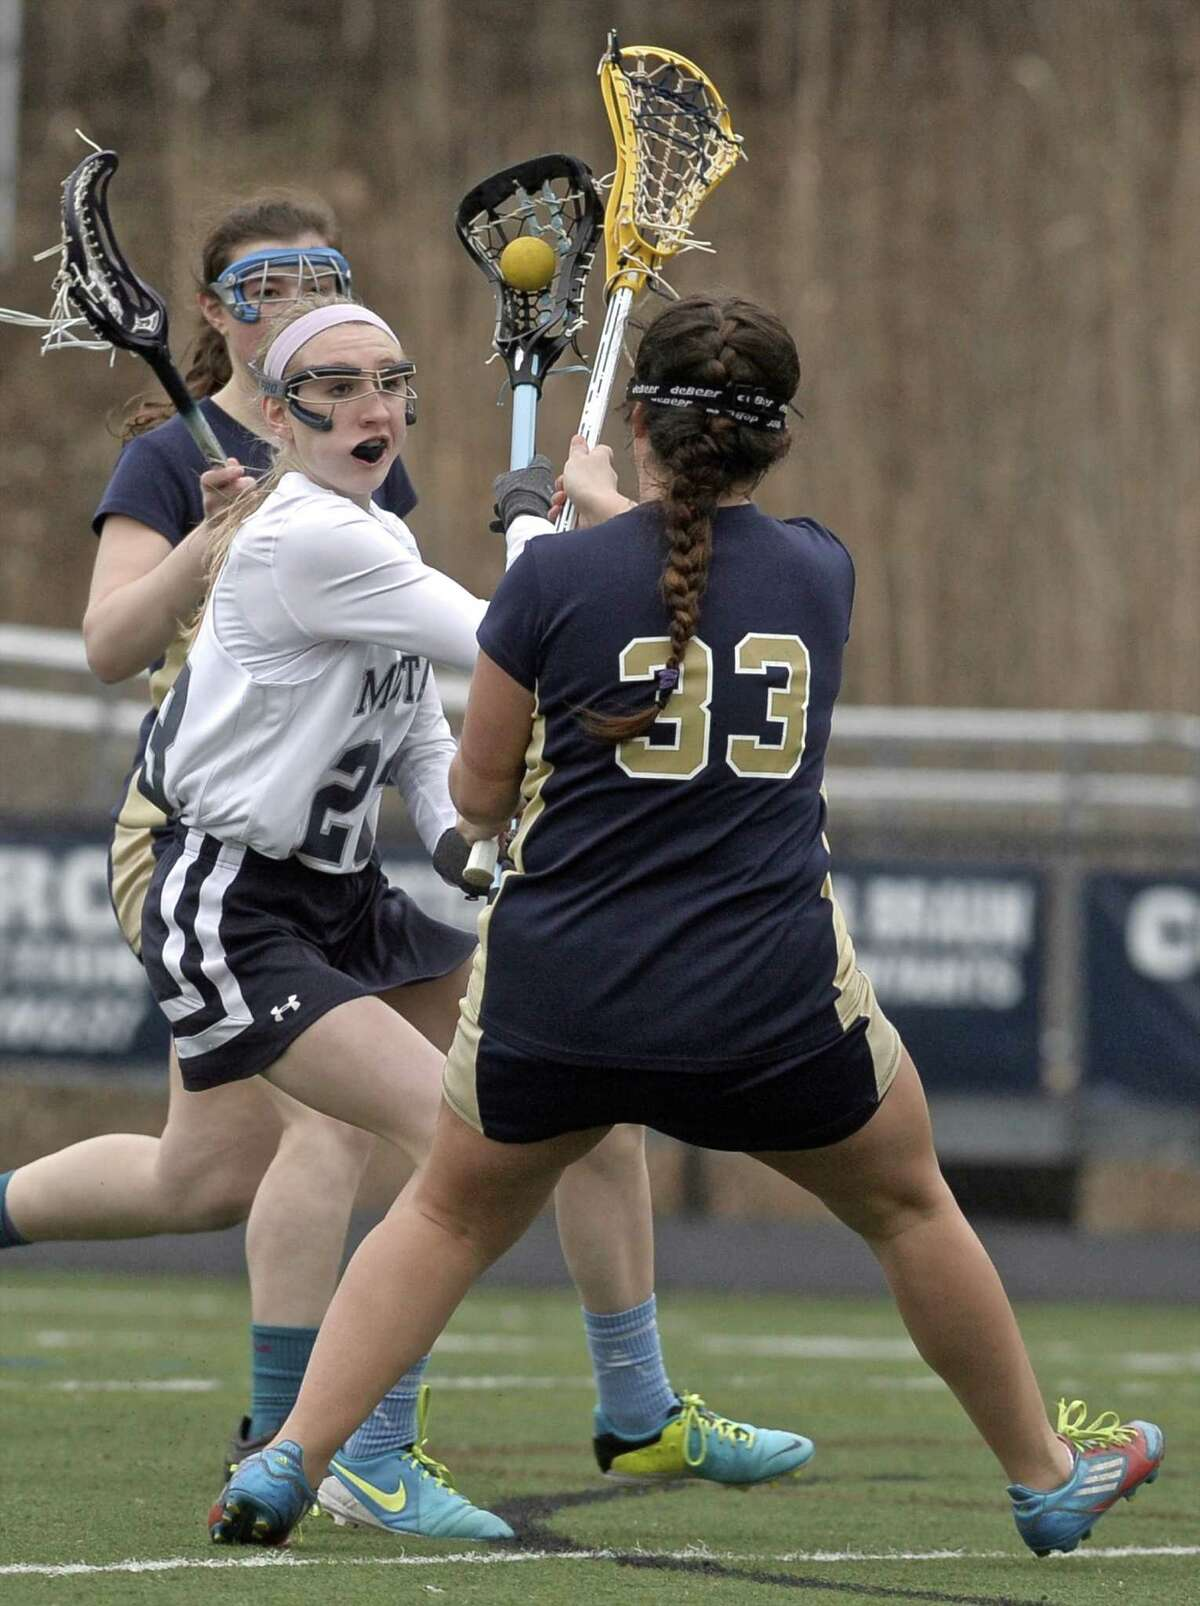 Immaculate's Caroline Wax (23) is caught between Notre Dame's Alicia Berard (33) and Alex D'Aurio during the girls high school lacrosse game between Notre Dame-Fairfield and Immaculate high schools, on Friday afternoon, April 10, 2015, played at Immaculate High School, in Danbury, Conn.